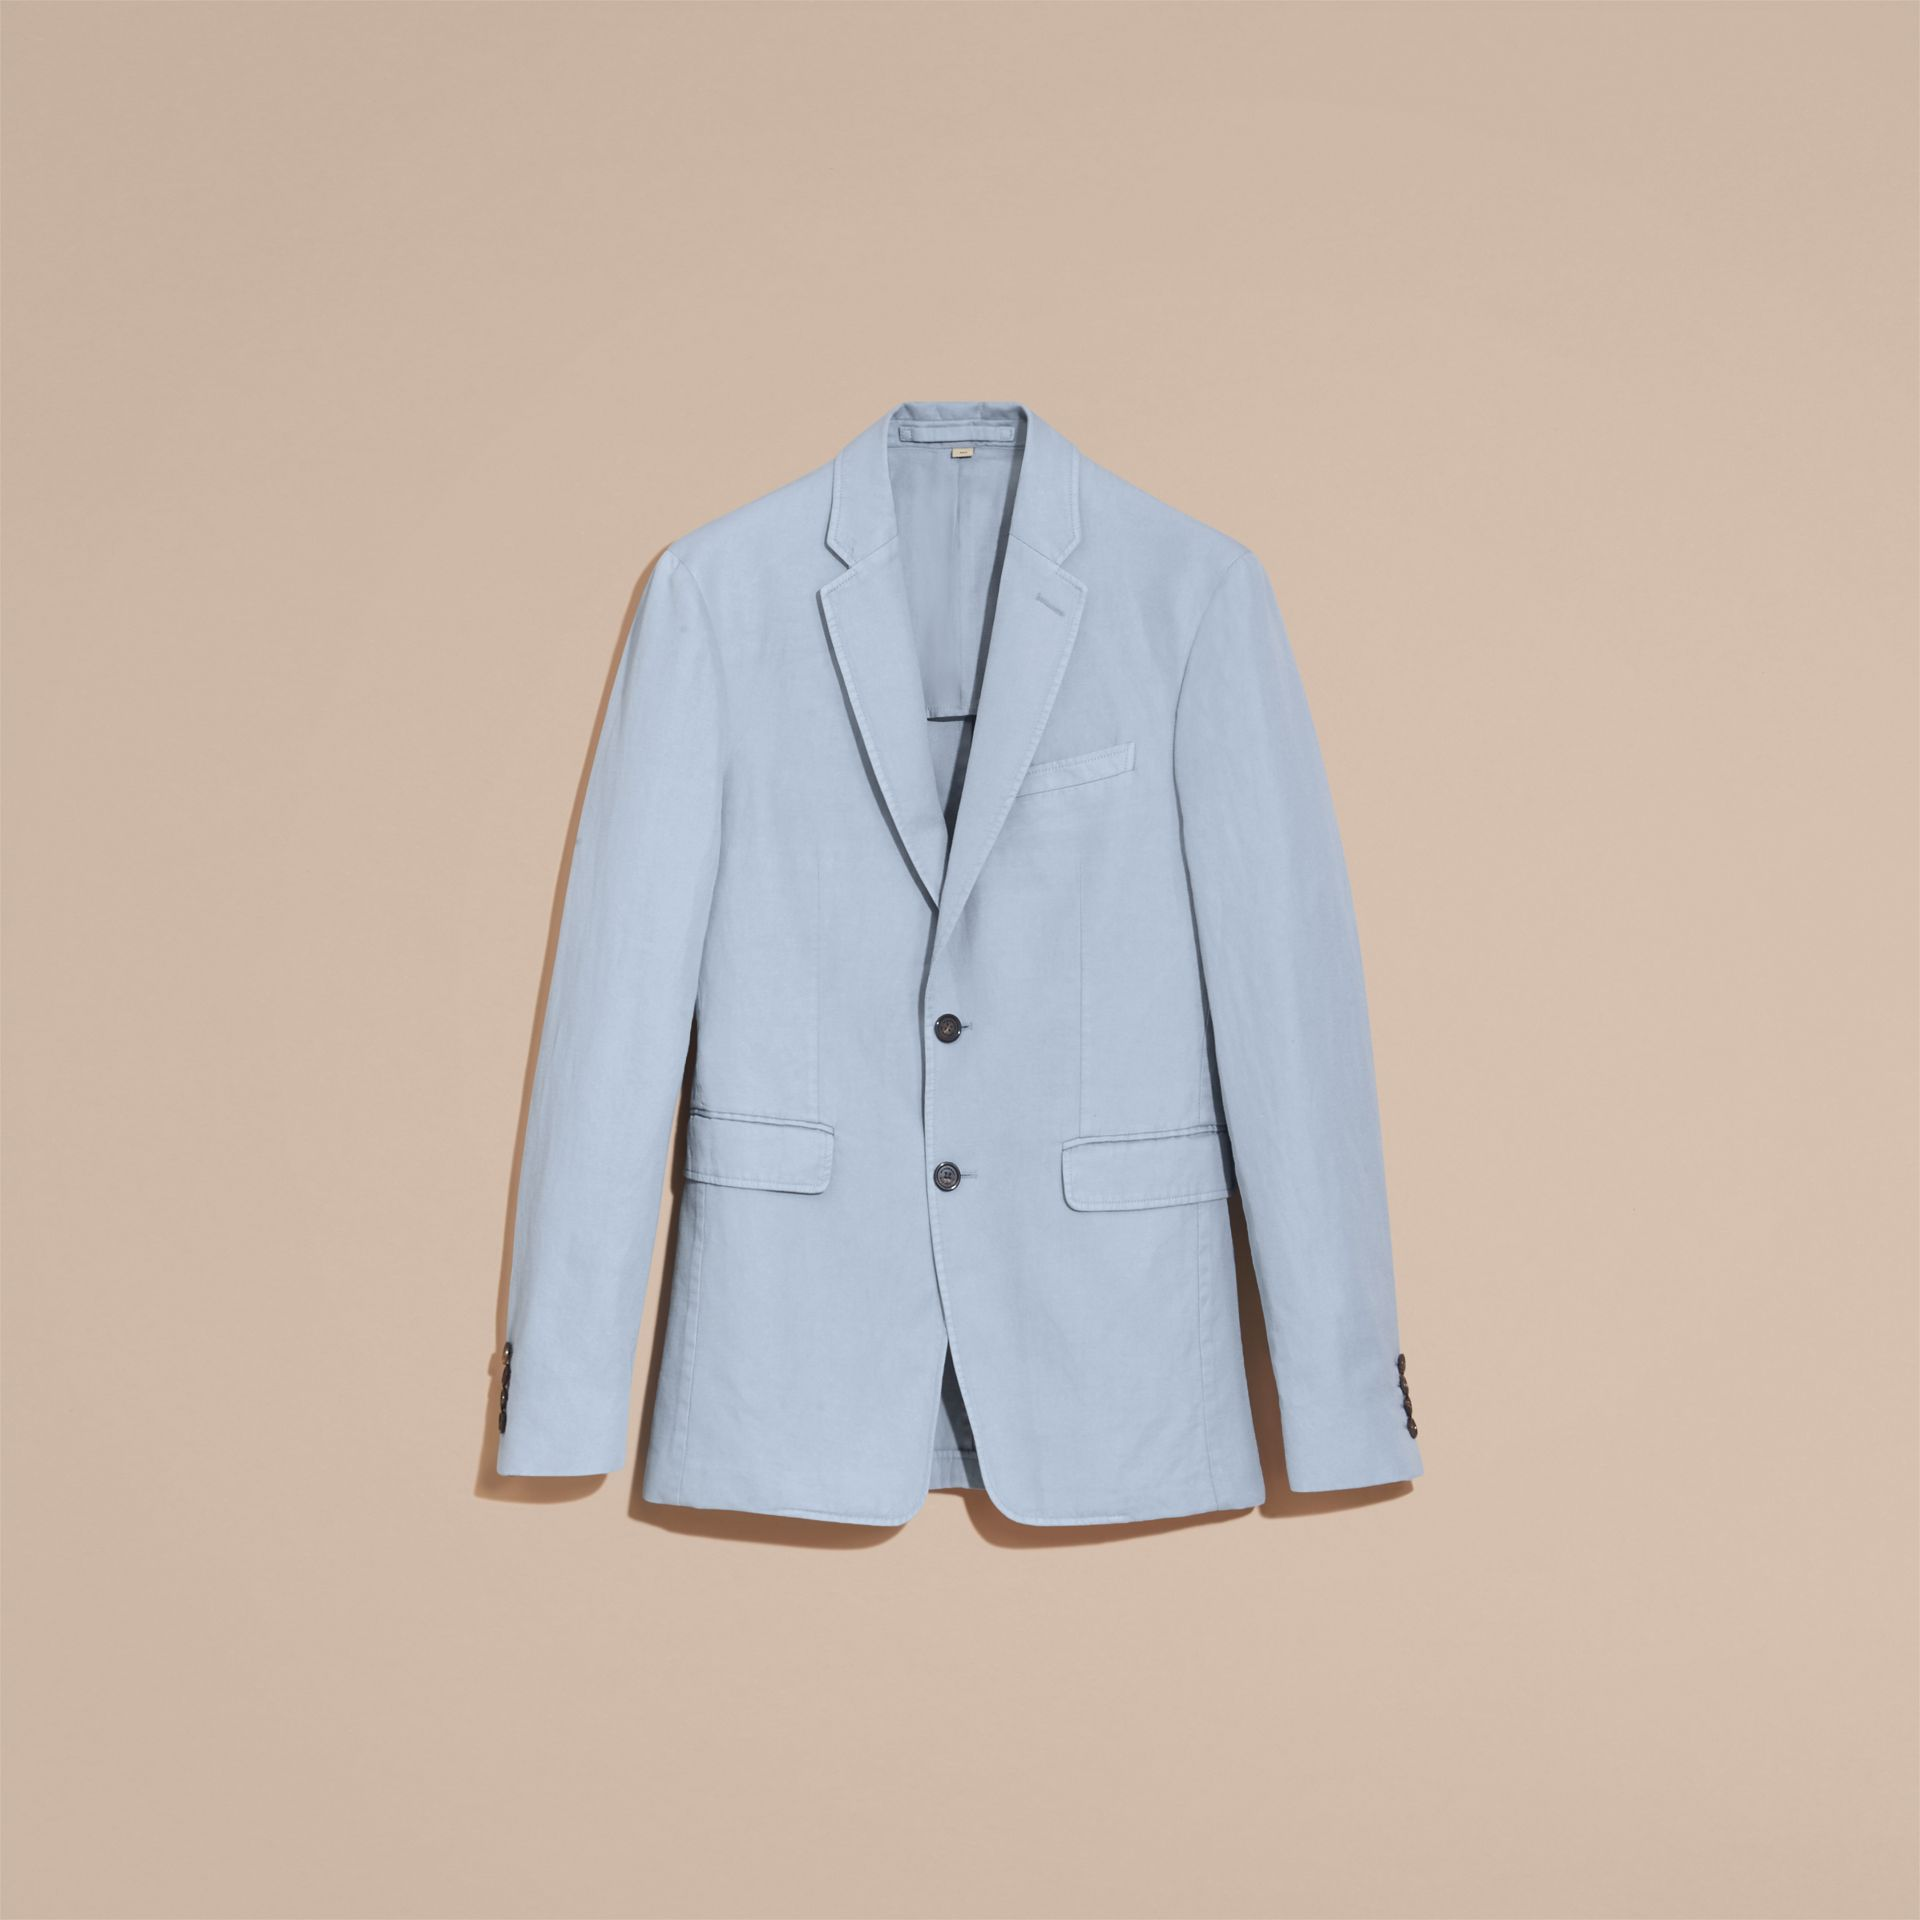 Slim Fit Cotton Linen Jacket in Pale Blue - Men | Burberry - gallery image 3